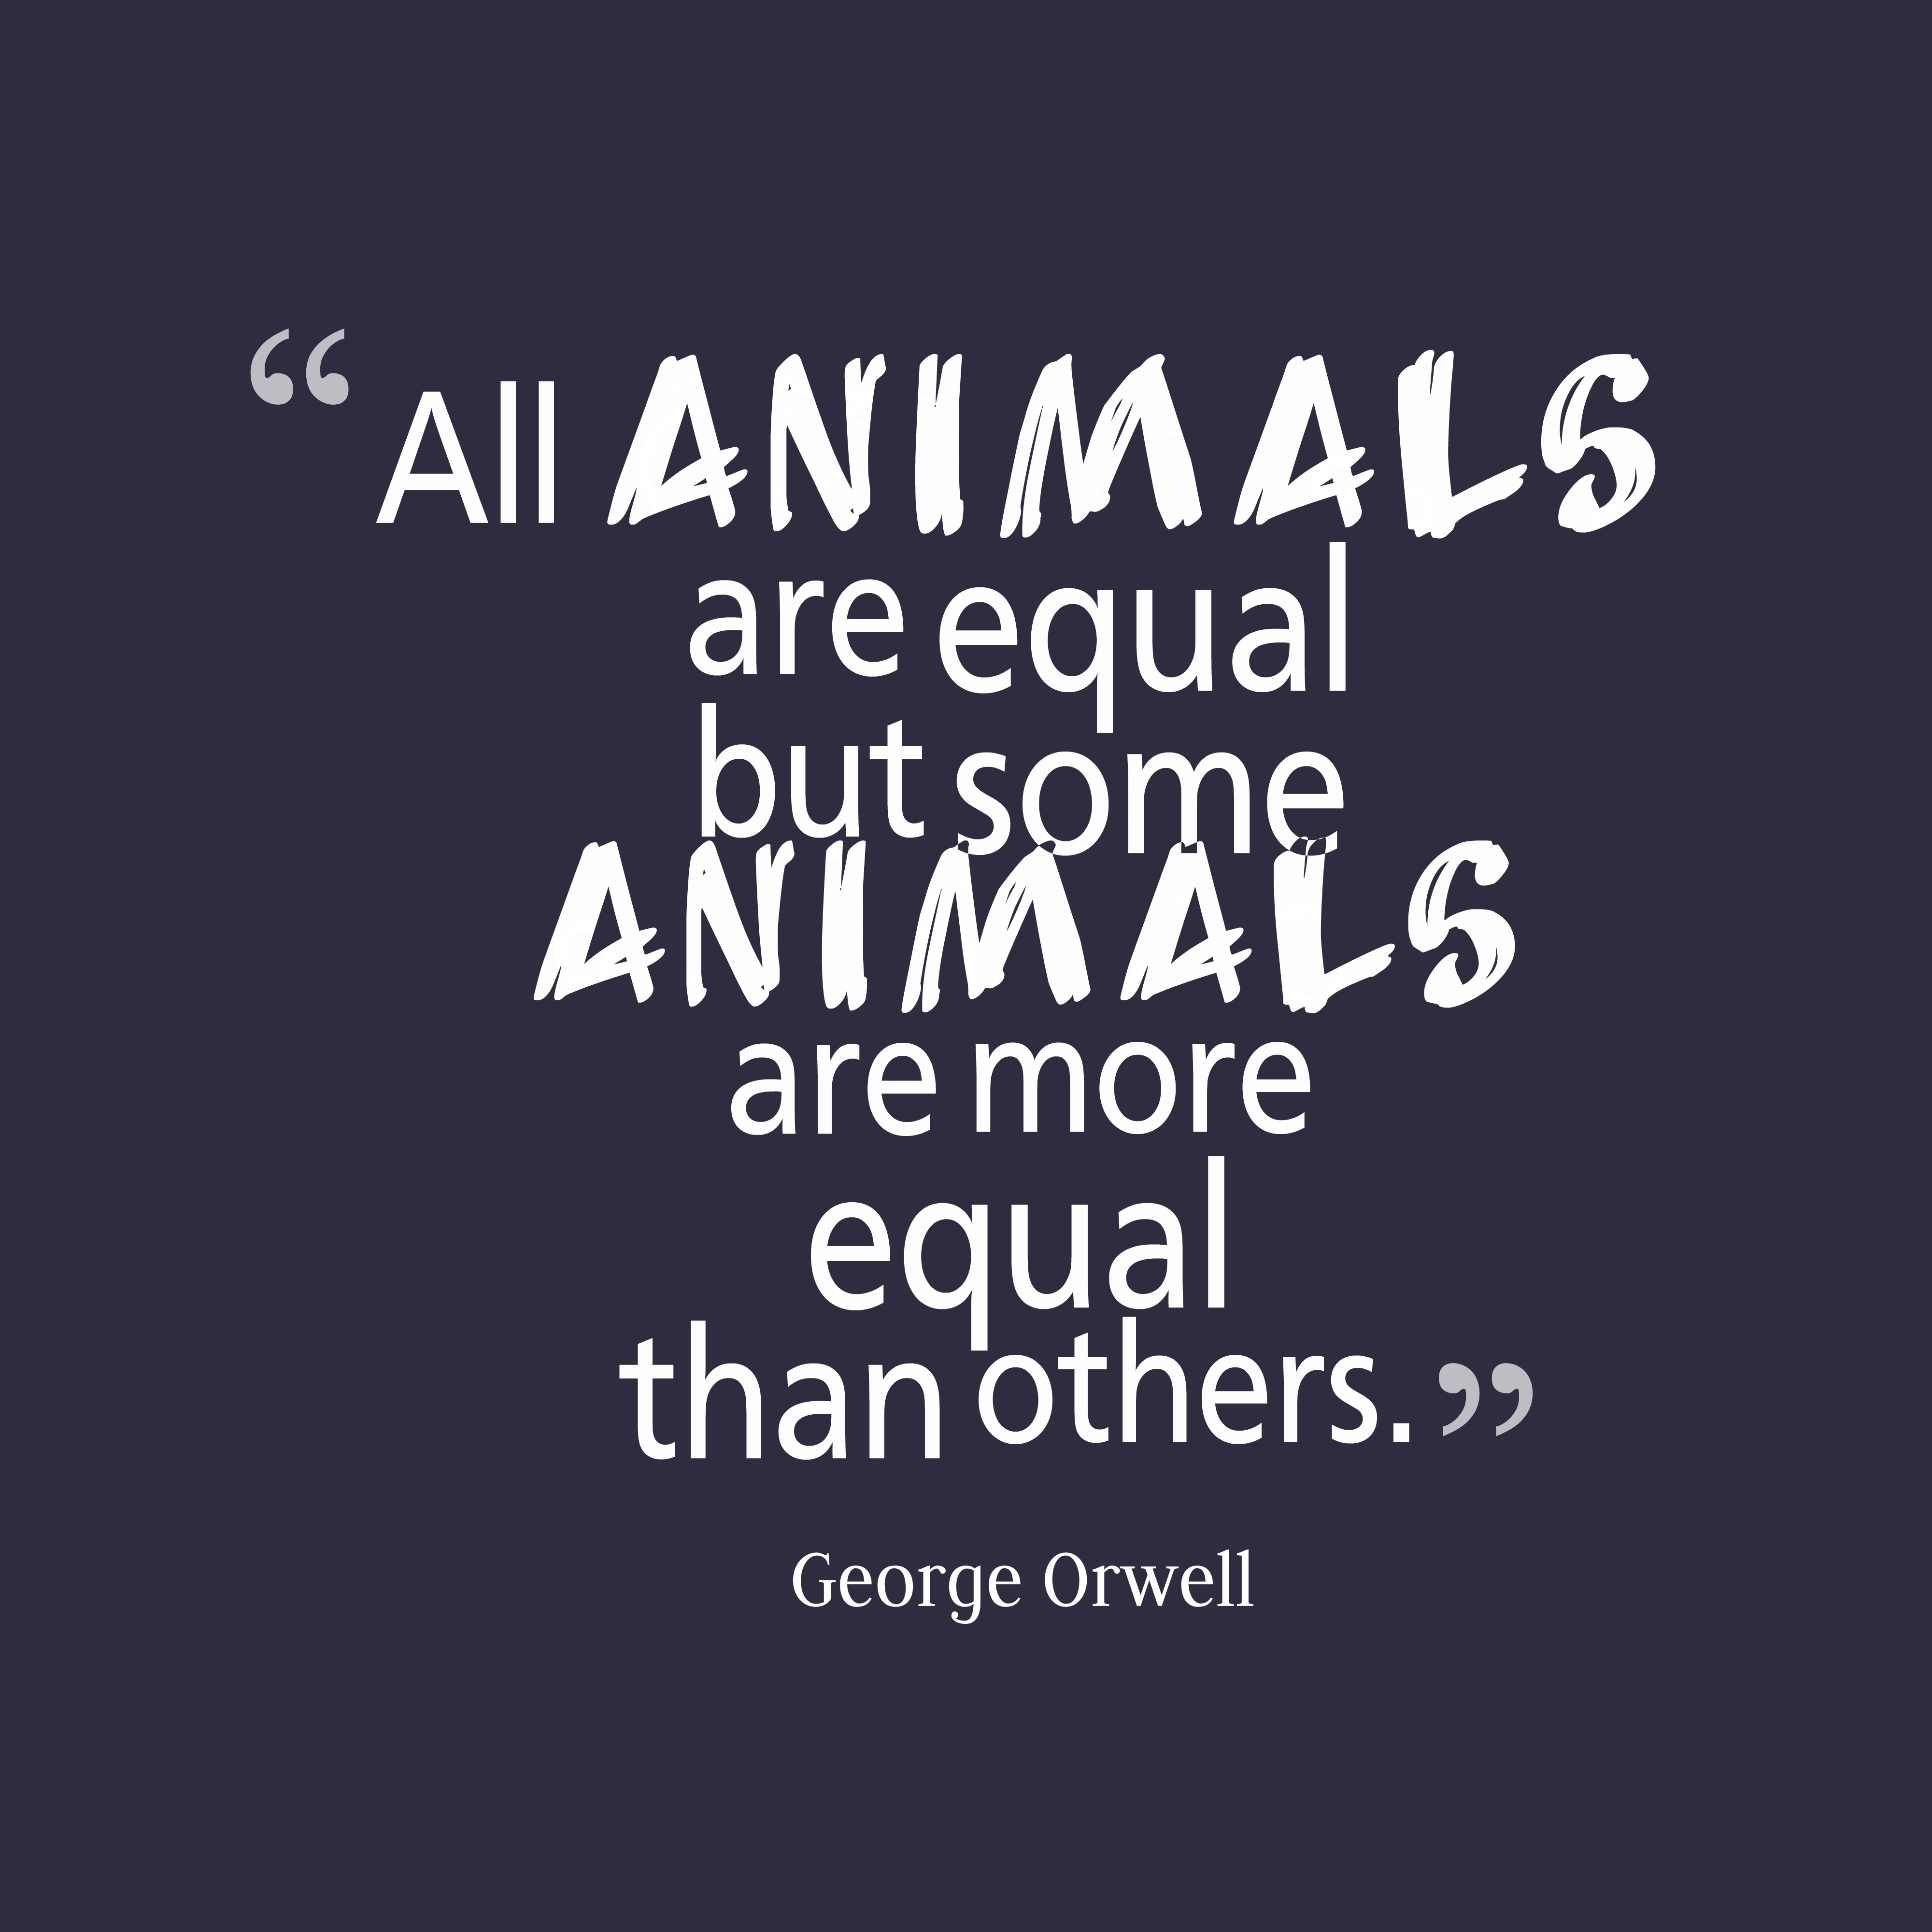 in all animals are equal peter Peter singer states that the basic principle of equality does not require equal or   all animals have the ability to suffer in the same way and to the same degree.